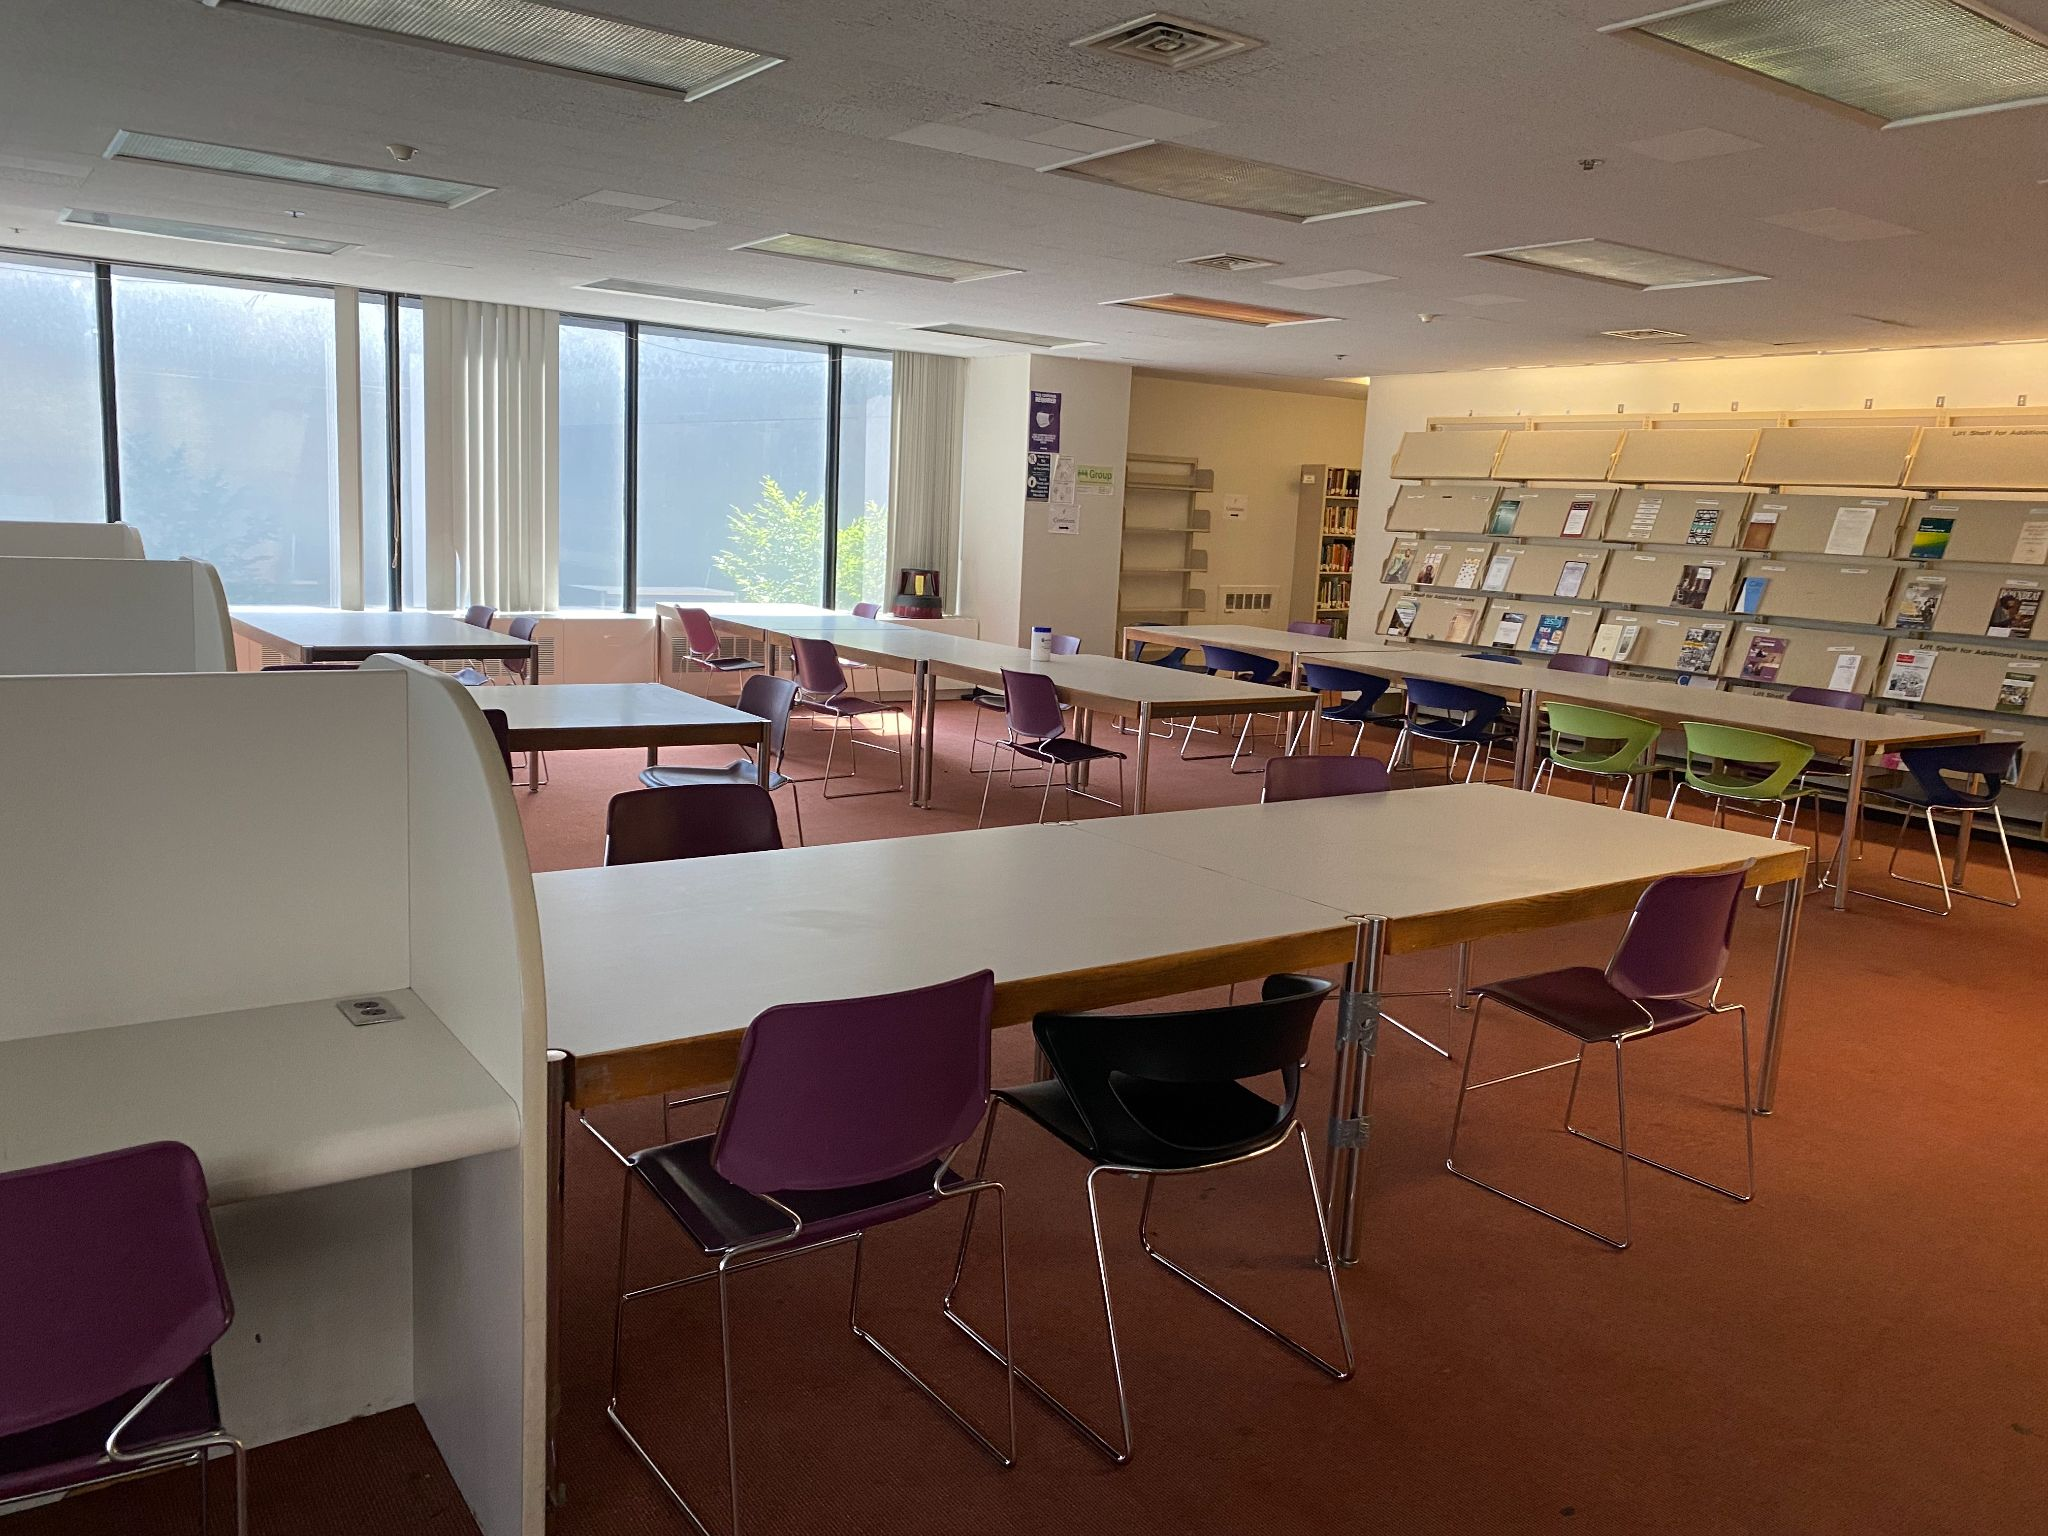 Hunter College library's fourth floor. A group study area with chairs and tables.